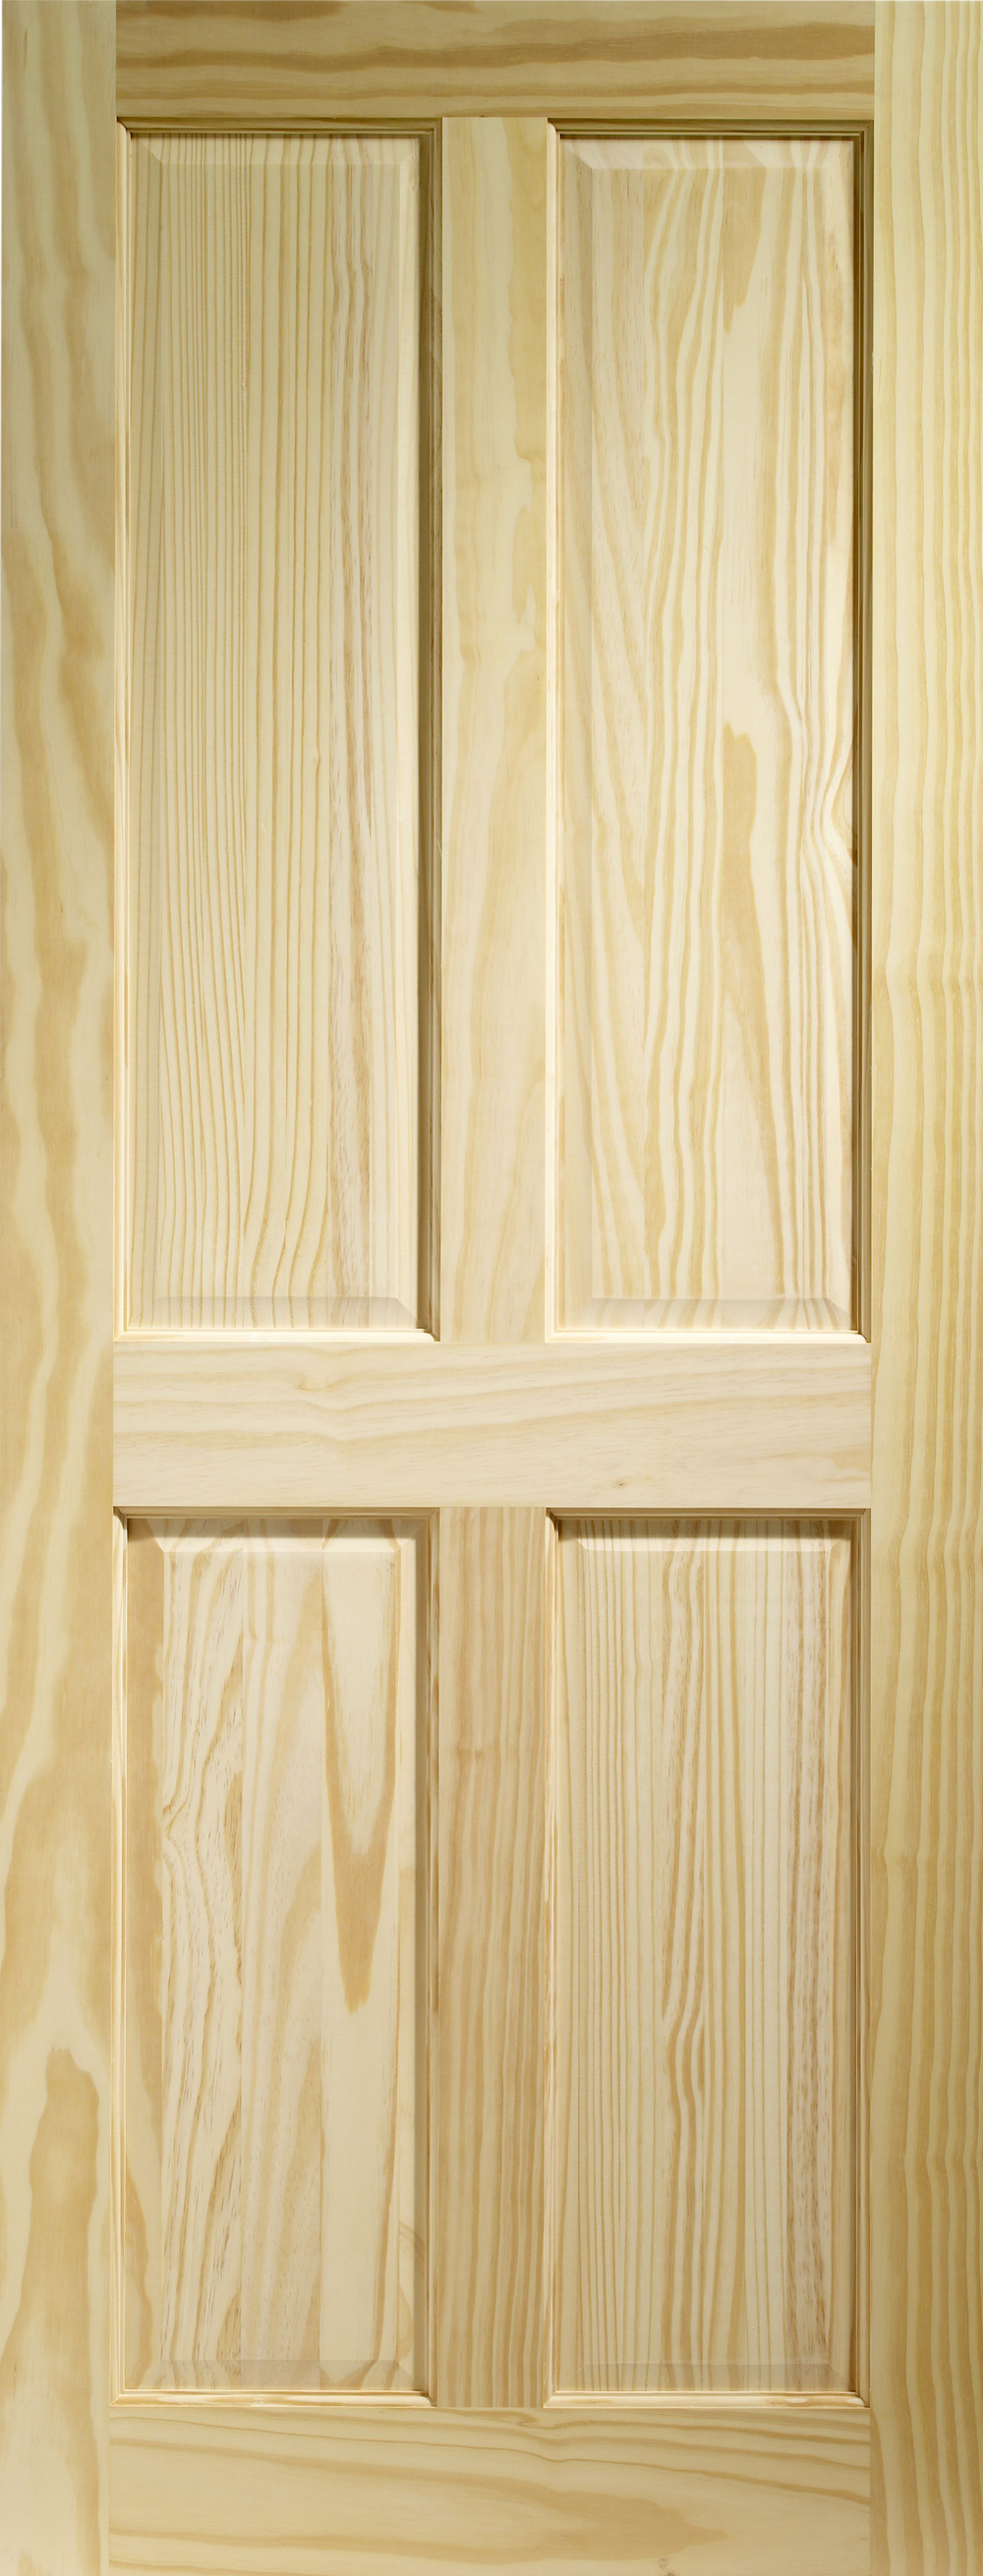 Clear Pine Victorian 4 panel.jpg